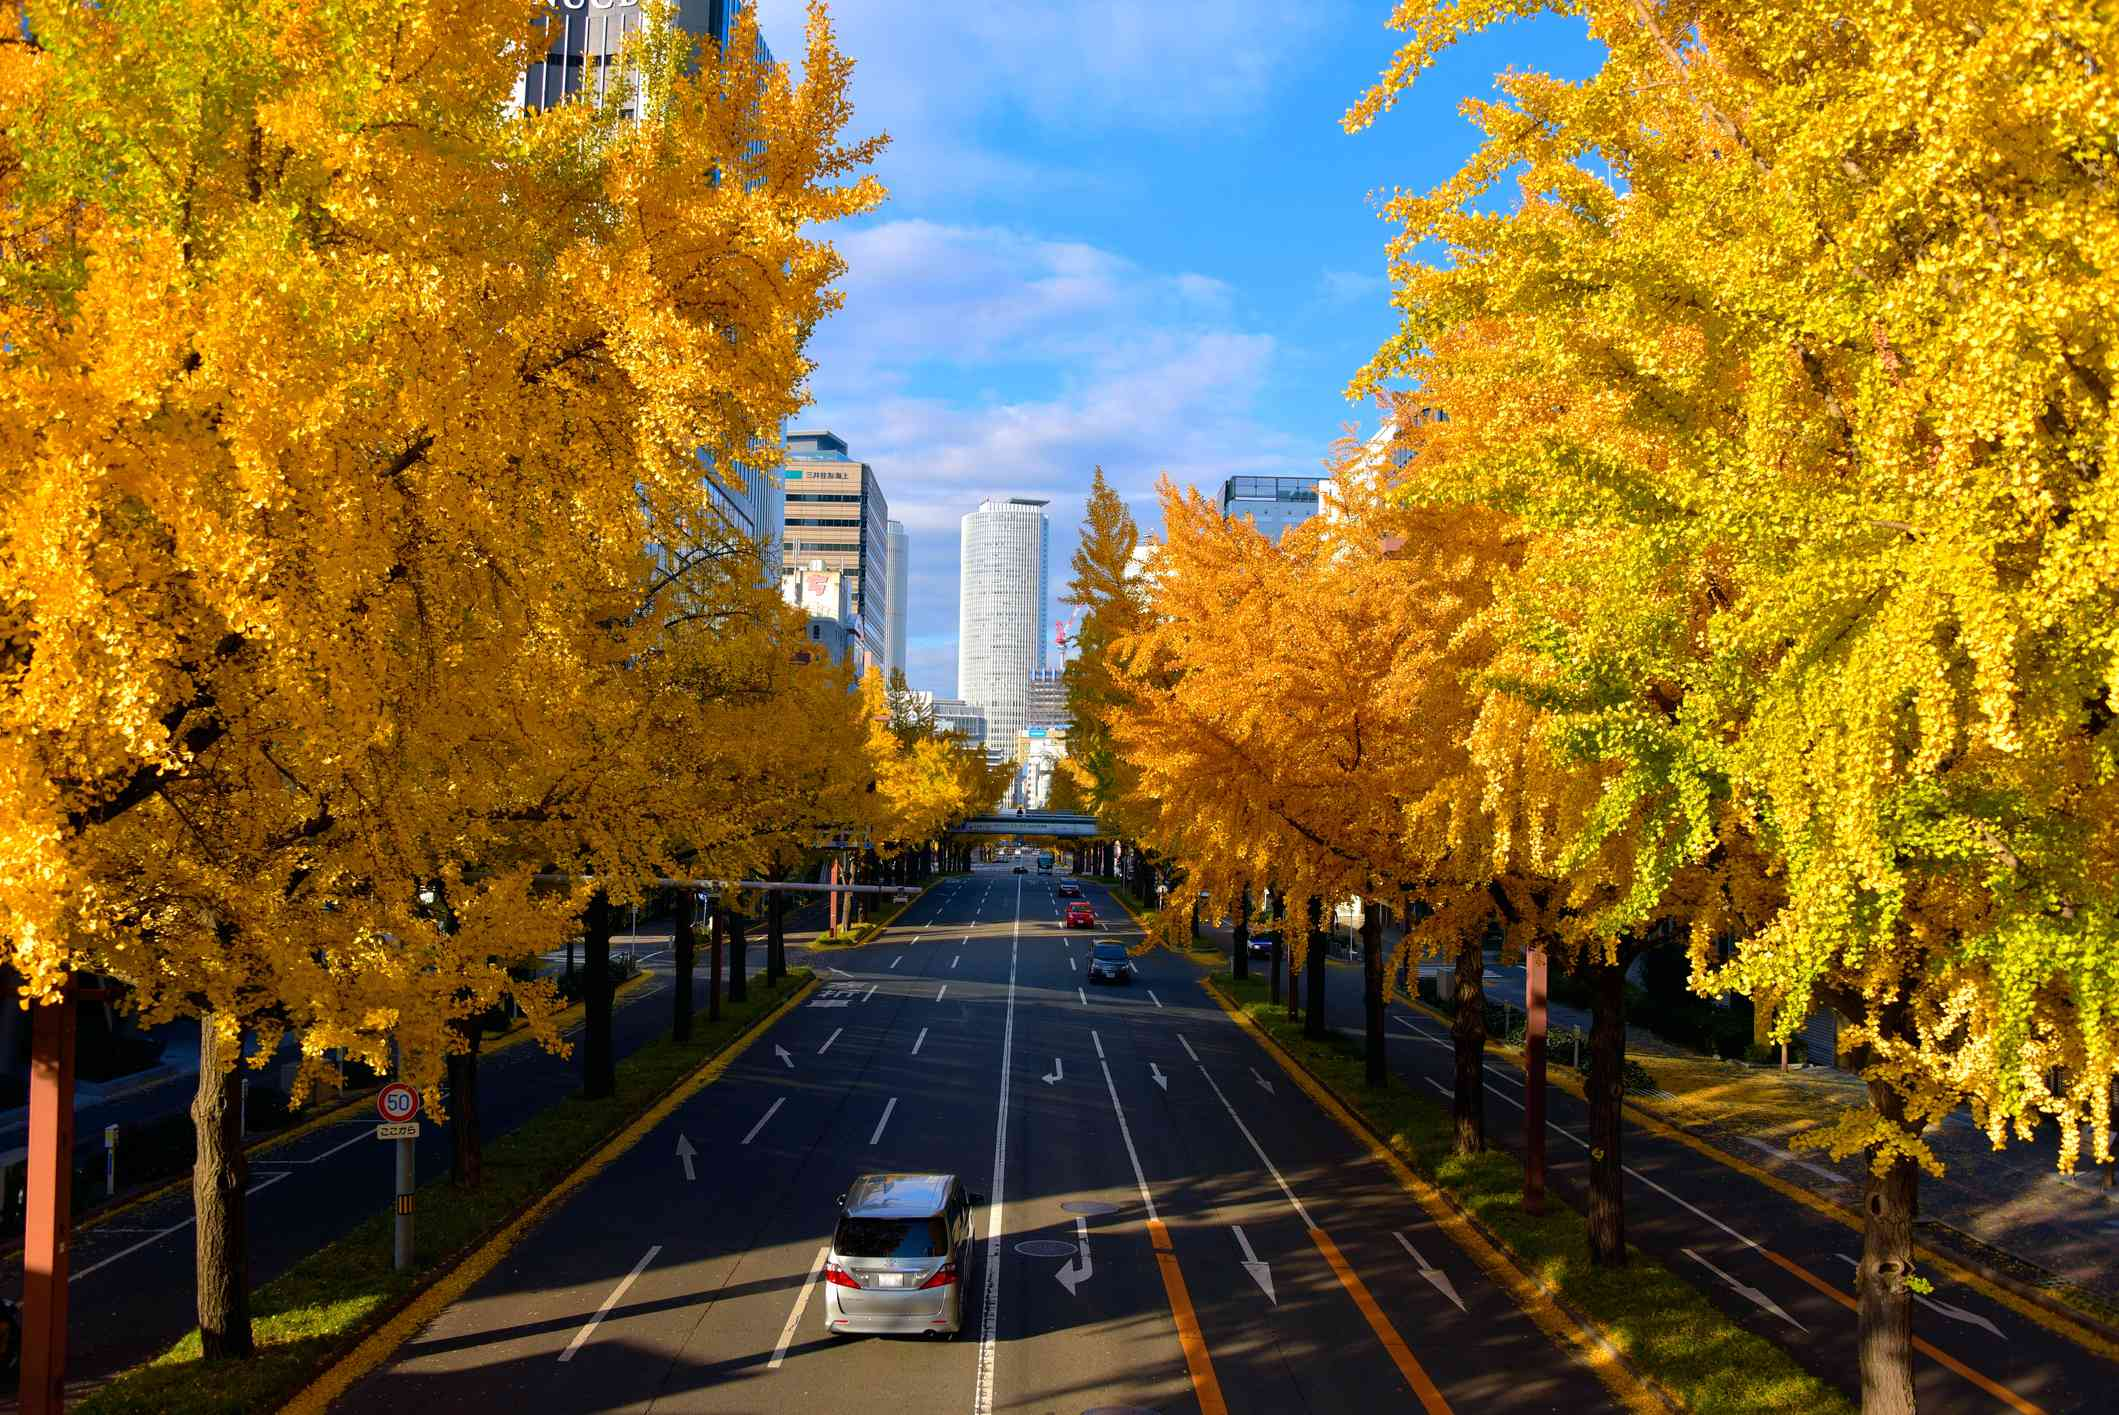 Gingko Biloba trees lined up against a highway in an urban setting.